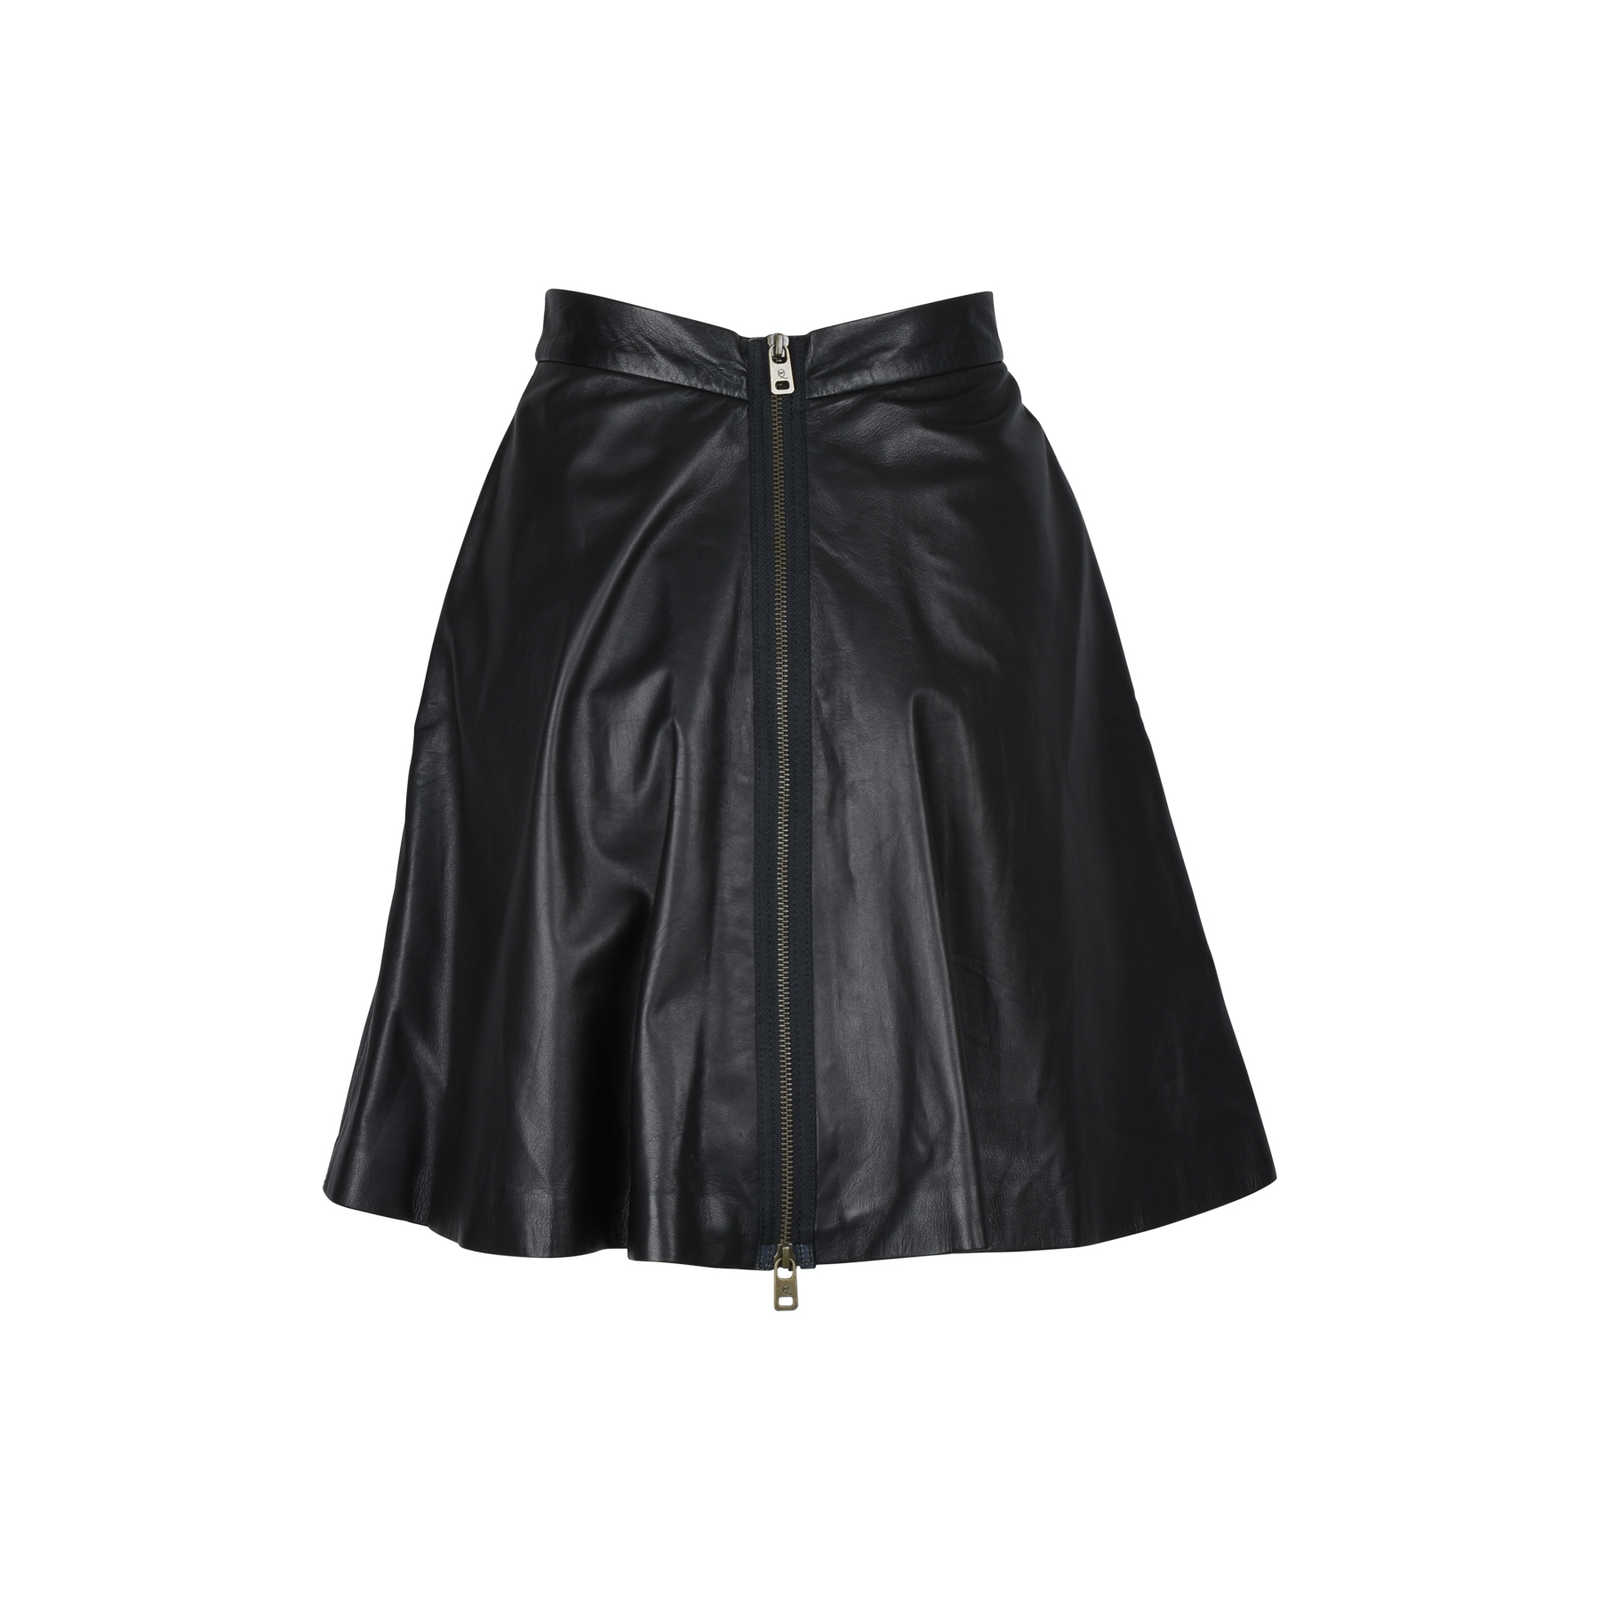 e87485c64 ... Authentic Second Hand McQ Alexander Mcqueen Leather Skirt  (PSS-097-00093) ...